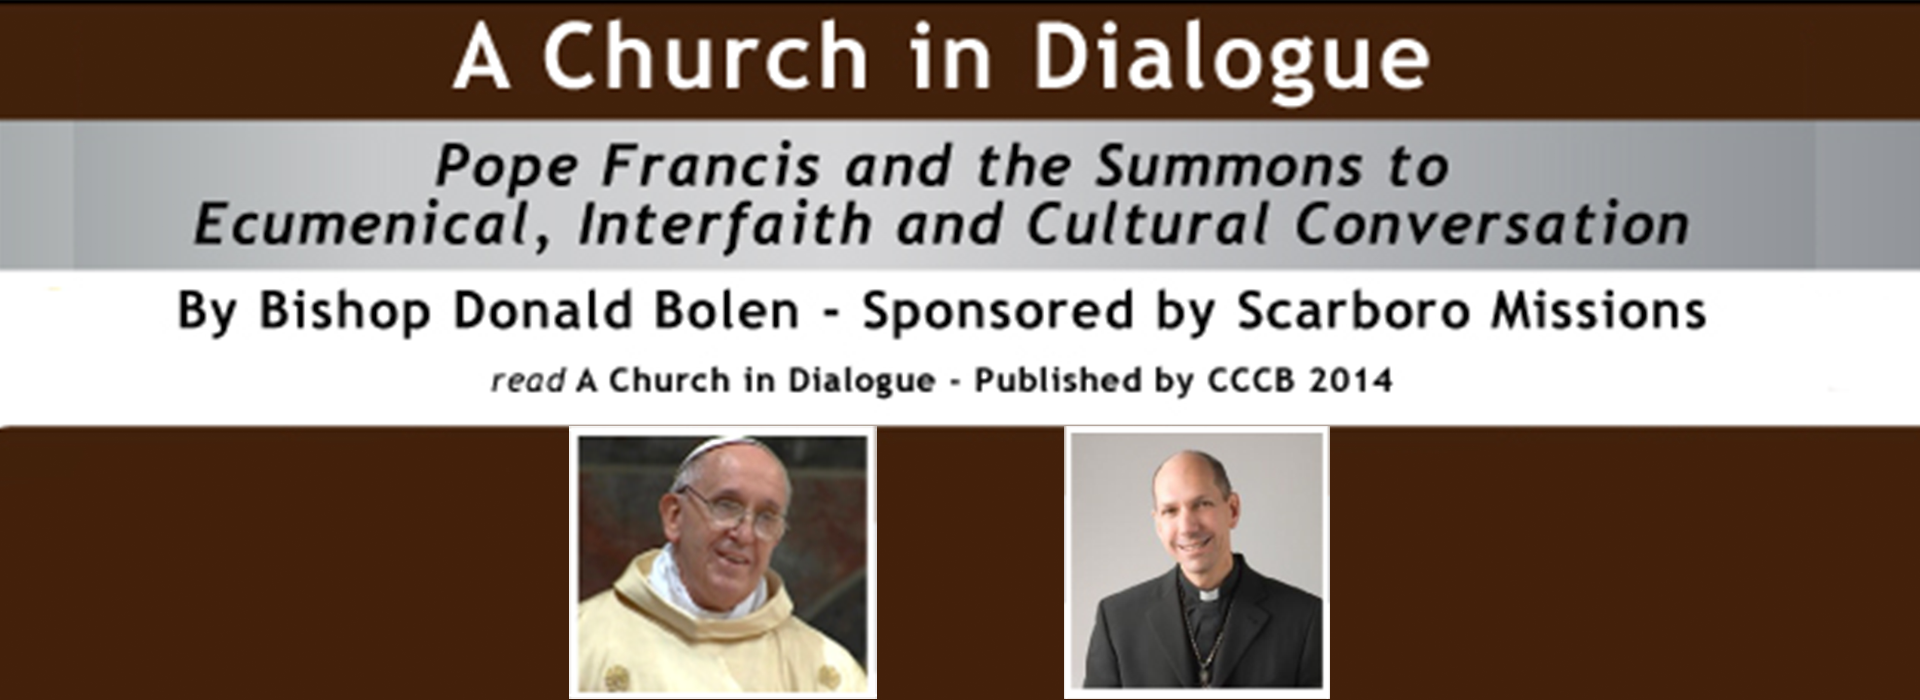 church-in-dialogue